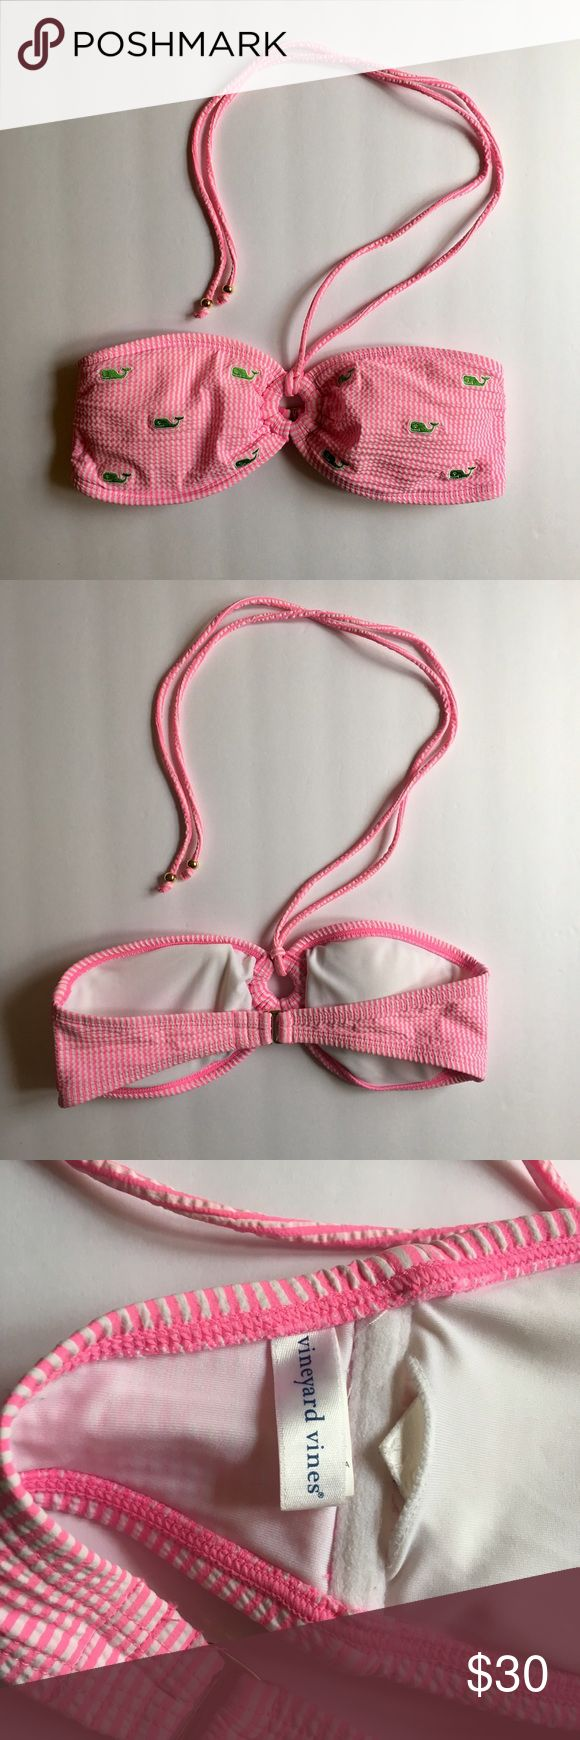 Vineyard Vines Seersucker Halter Bikini Top XXS This bikini top can be worn with the straps, or can be taken off to be strapless making it a bandeau. Complete your preppy look with this adorable top! Vineyard Vines Swim Bikinis